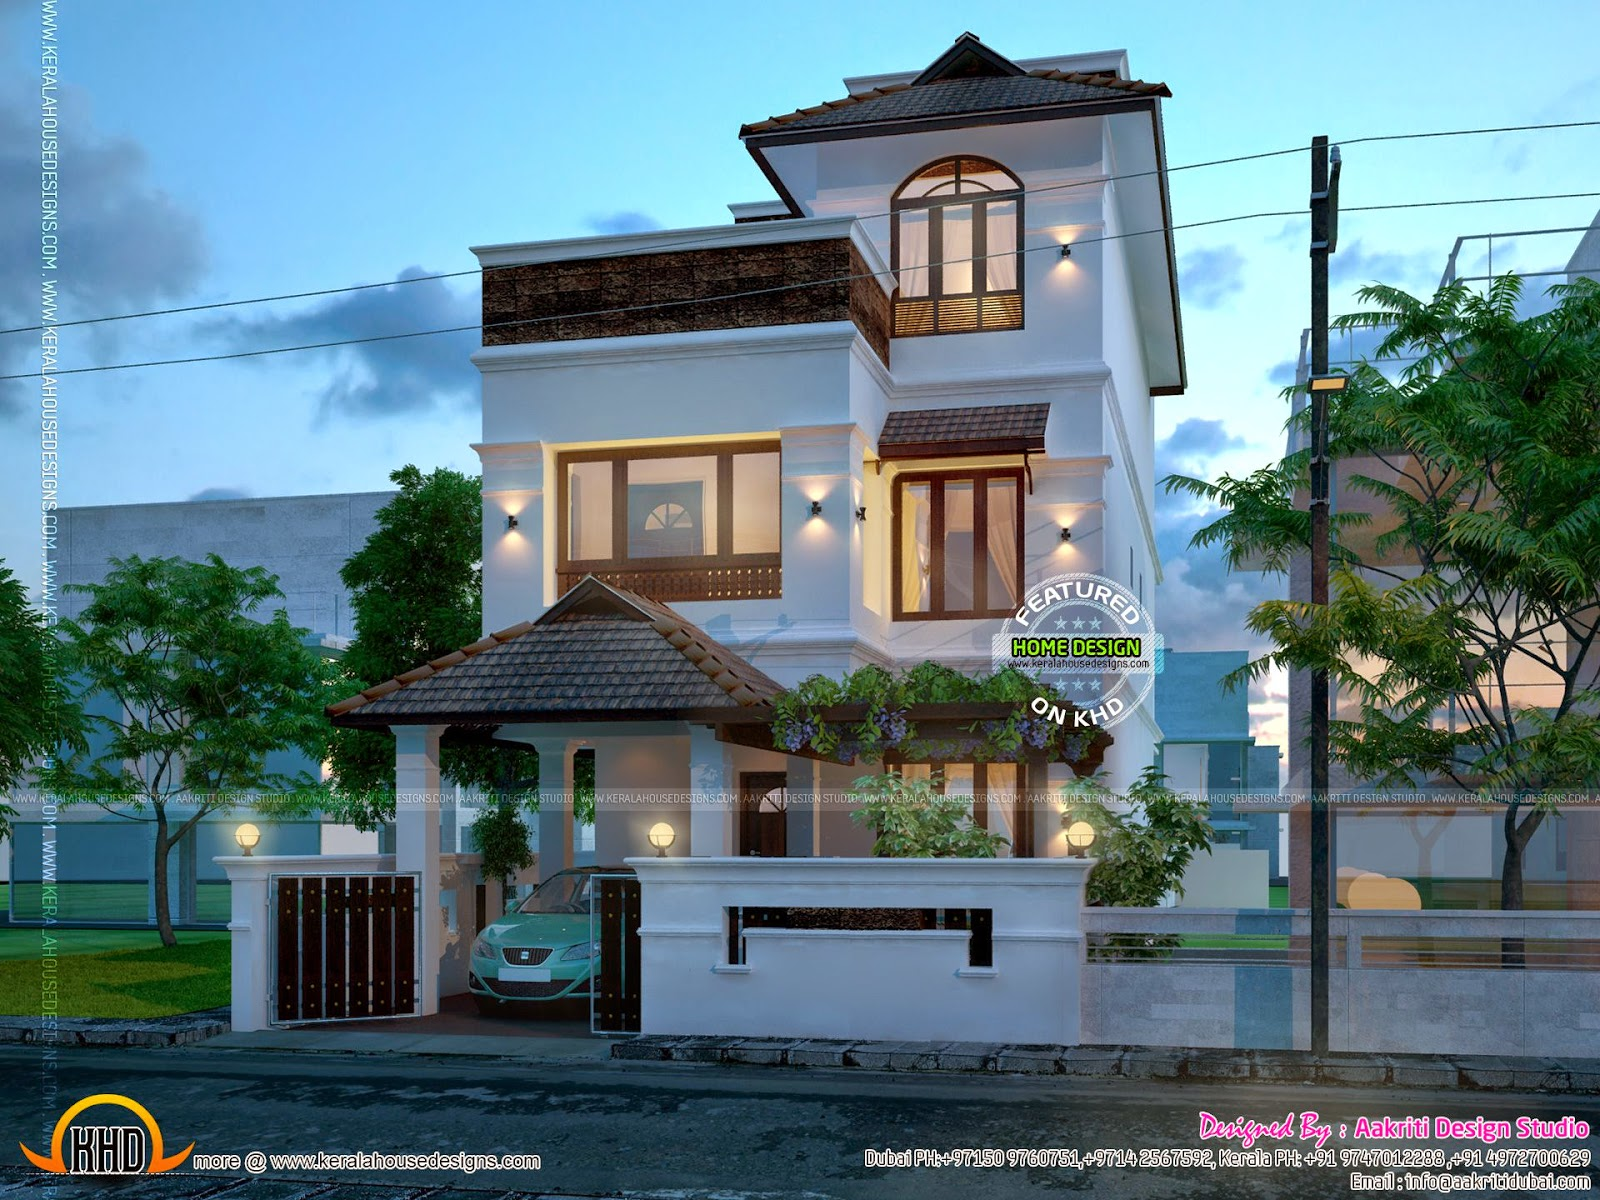 new-house-design.jpg